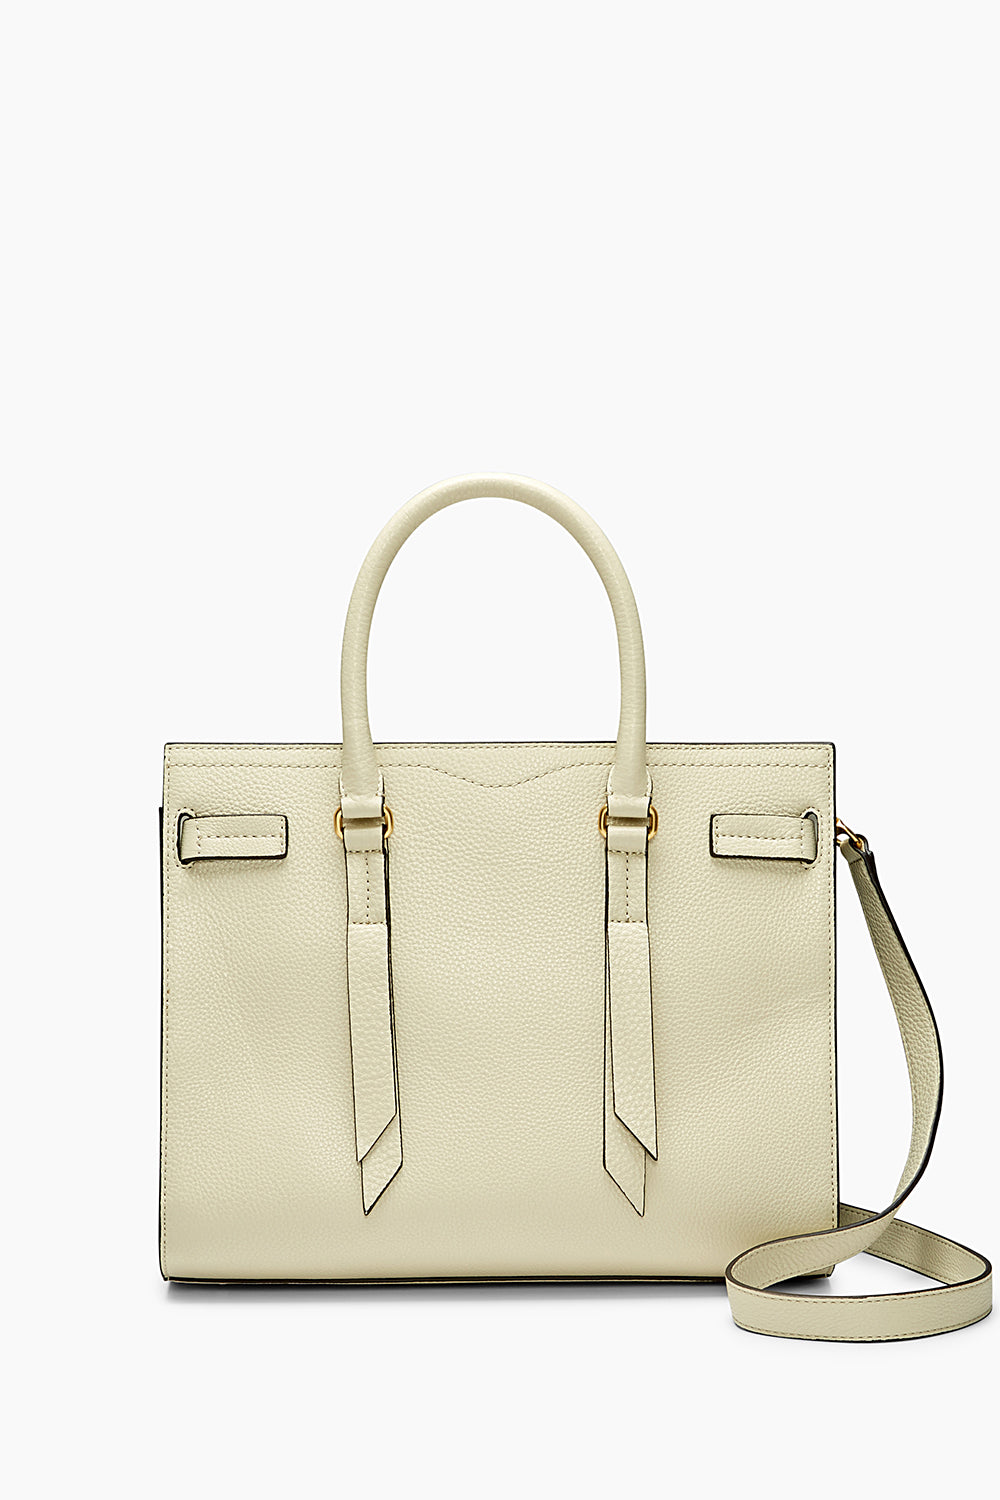 Rebecca Minkoff Sherry Leather Satchel Bag sQKHA3dw